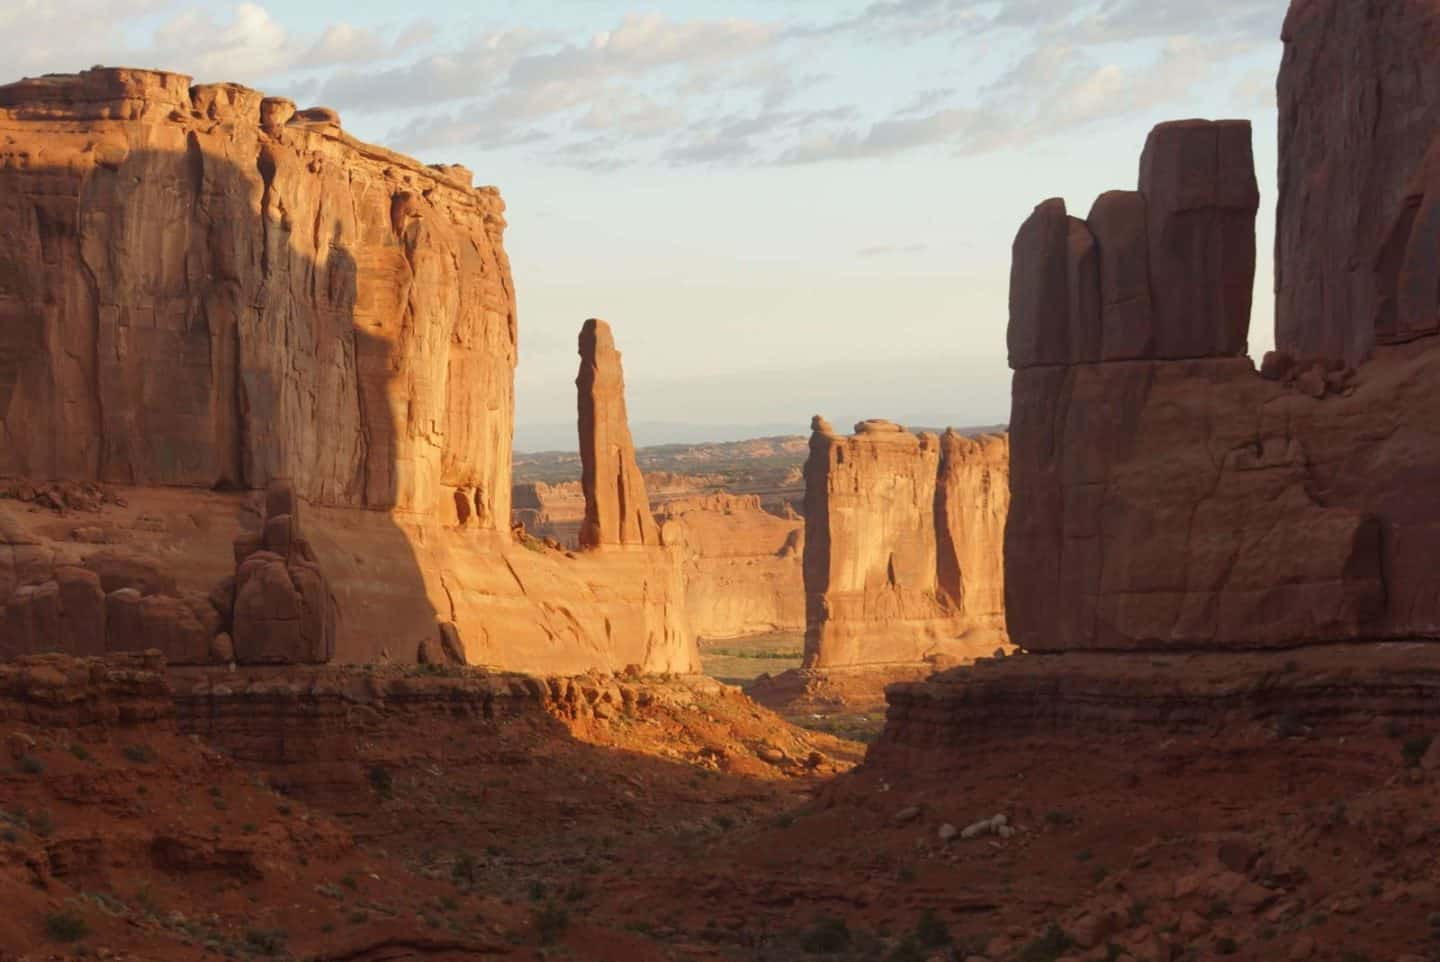 Best Places to Stay in Moab Near Arches National Park